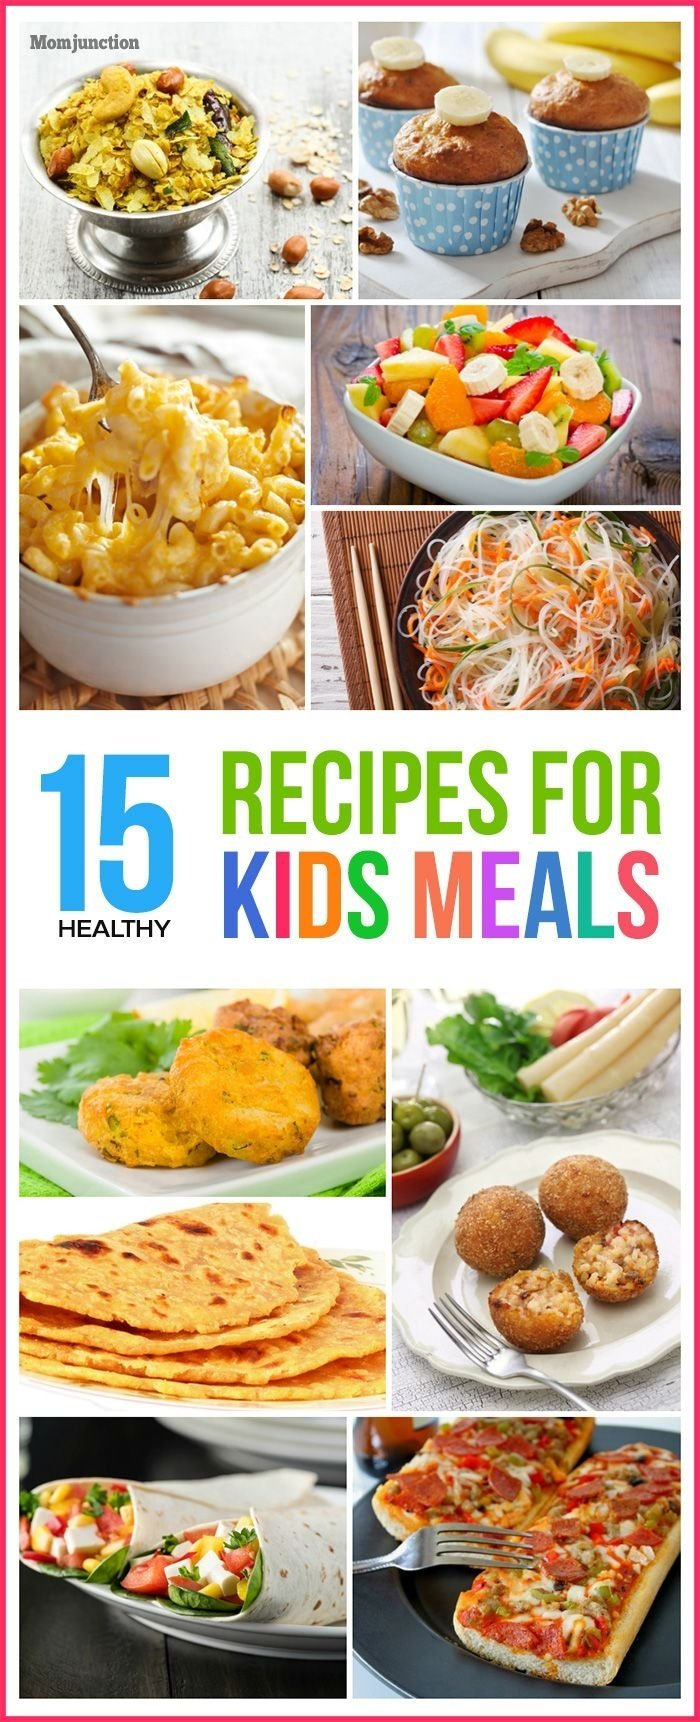 10 Stylish Good Dinner Ideas For Kids 805 best healthy food for kids dinner images on pinterest cooking 2 2020